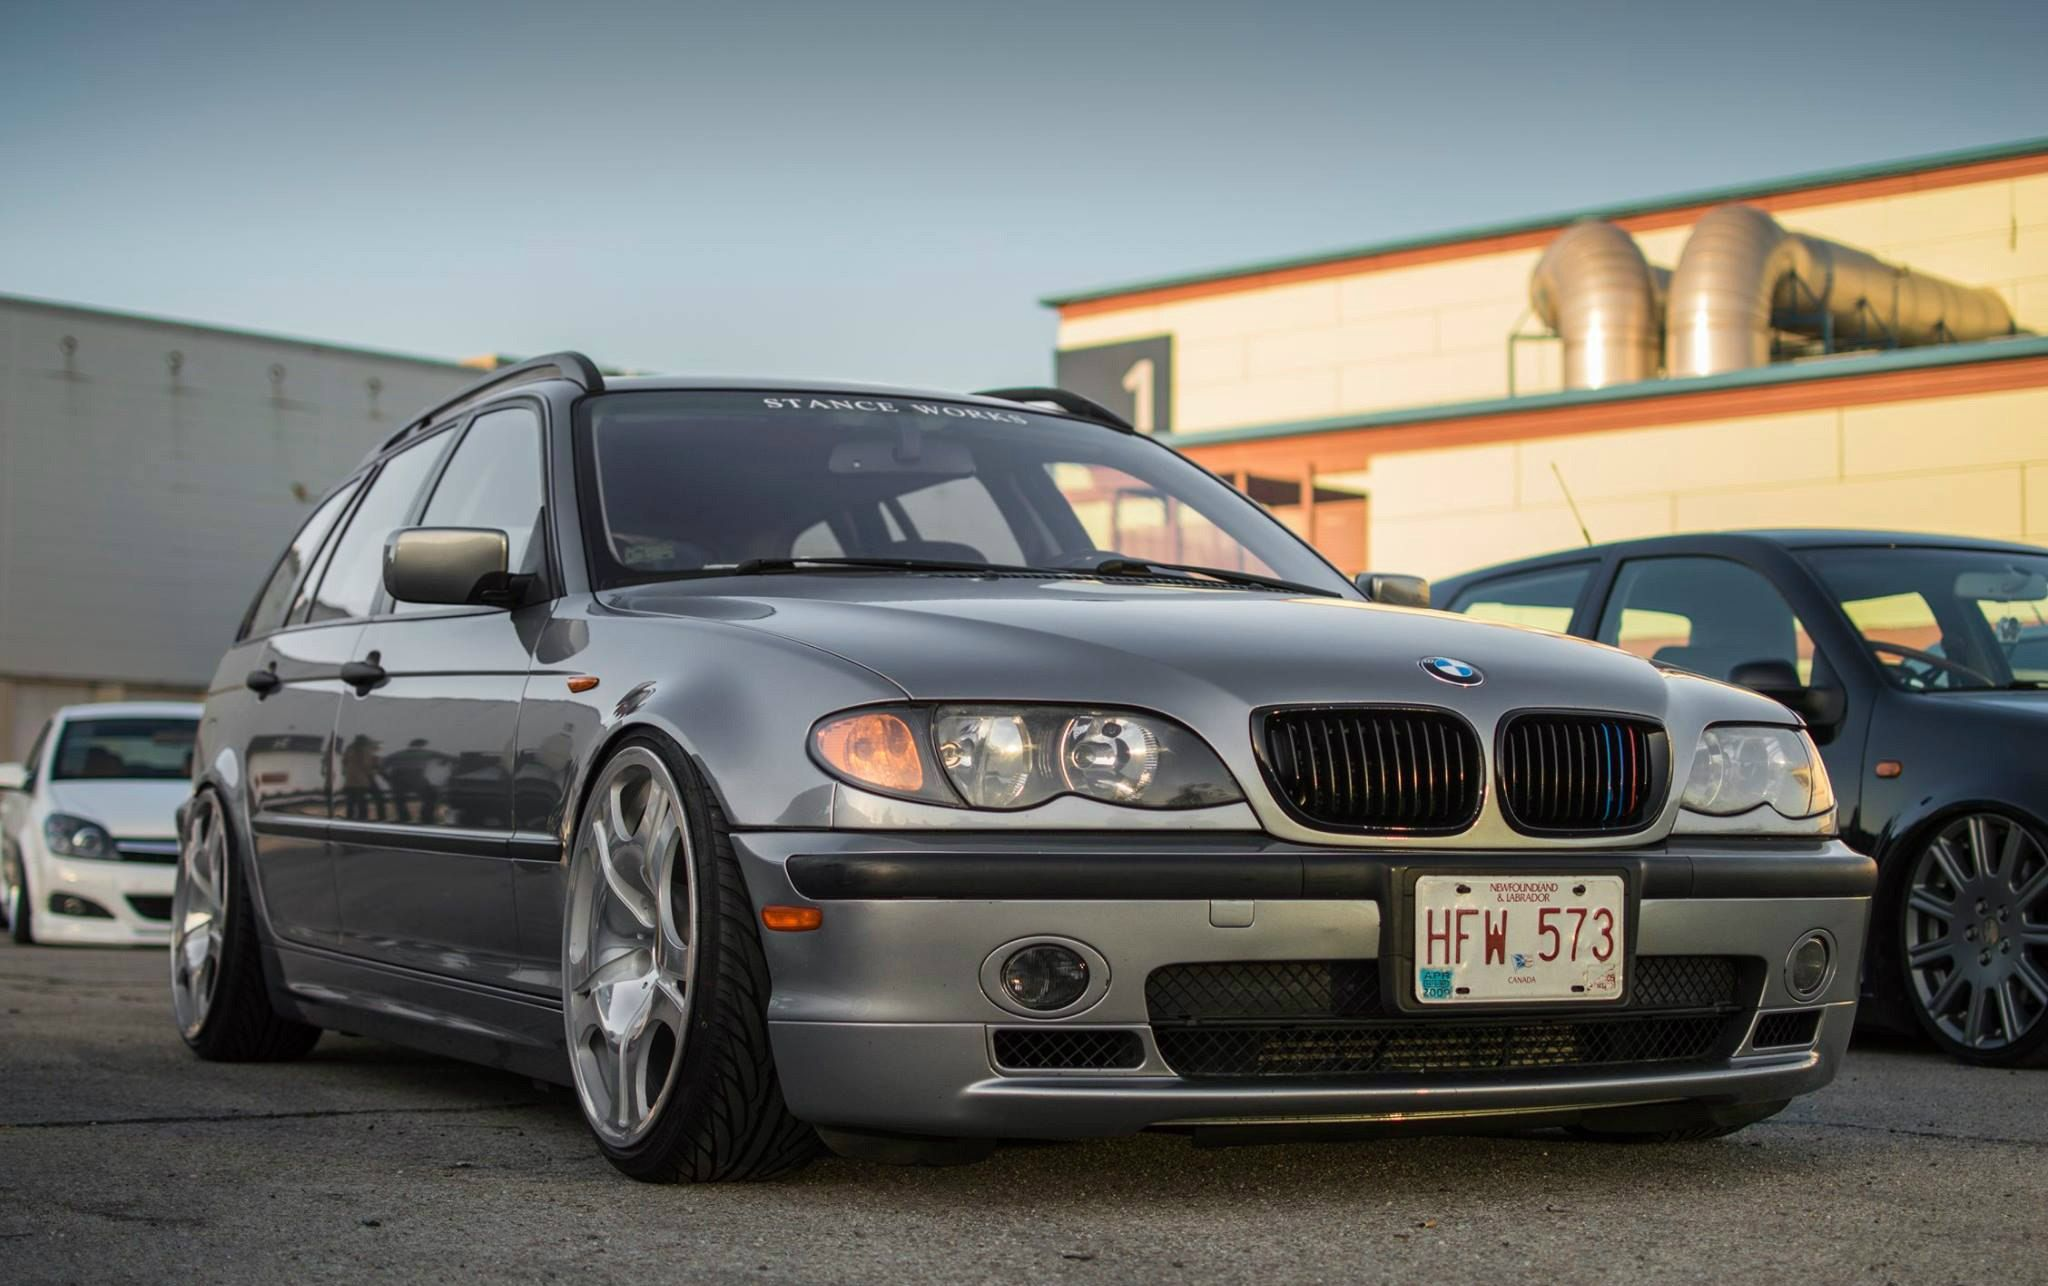 Bmw E46 Touring Wallpapers Top Free Bmw E46 Touring Backgrounds Wallpaperaccess